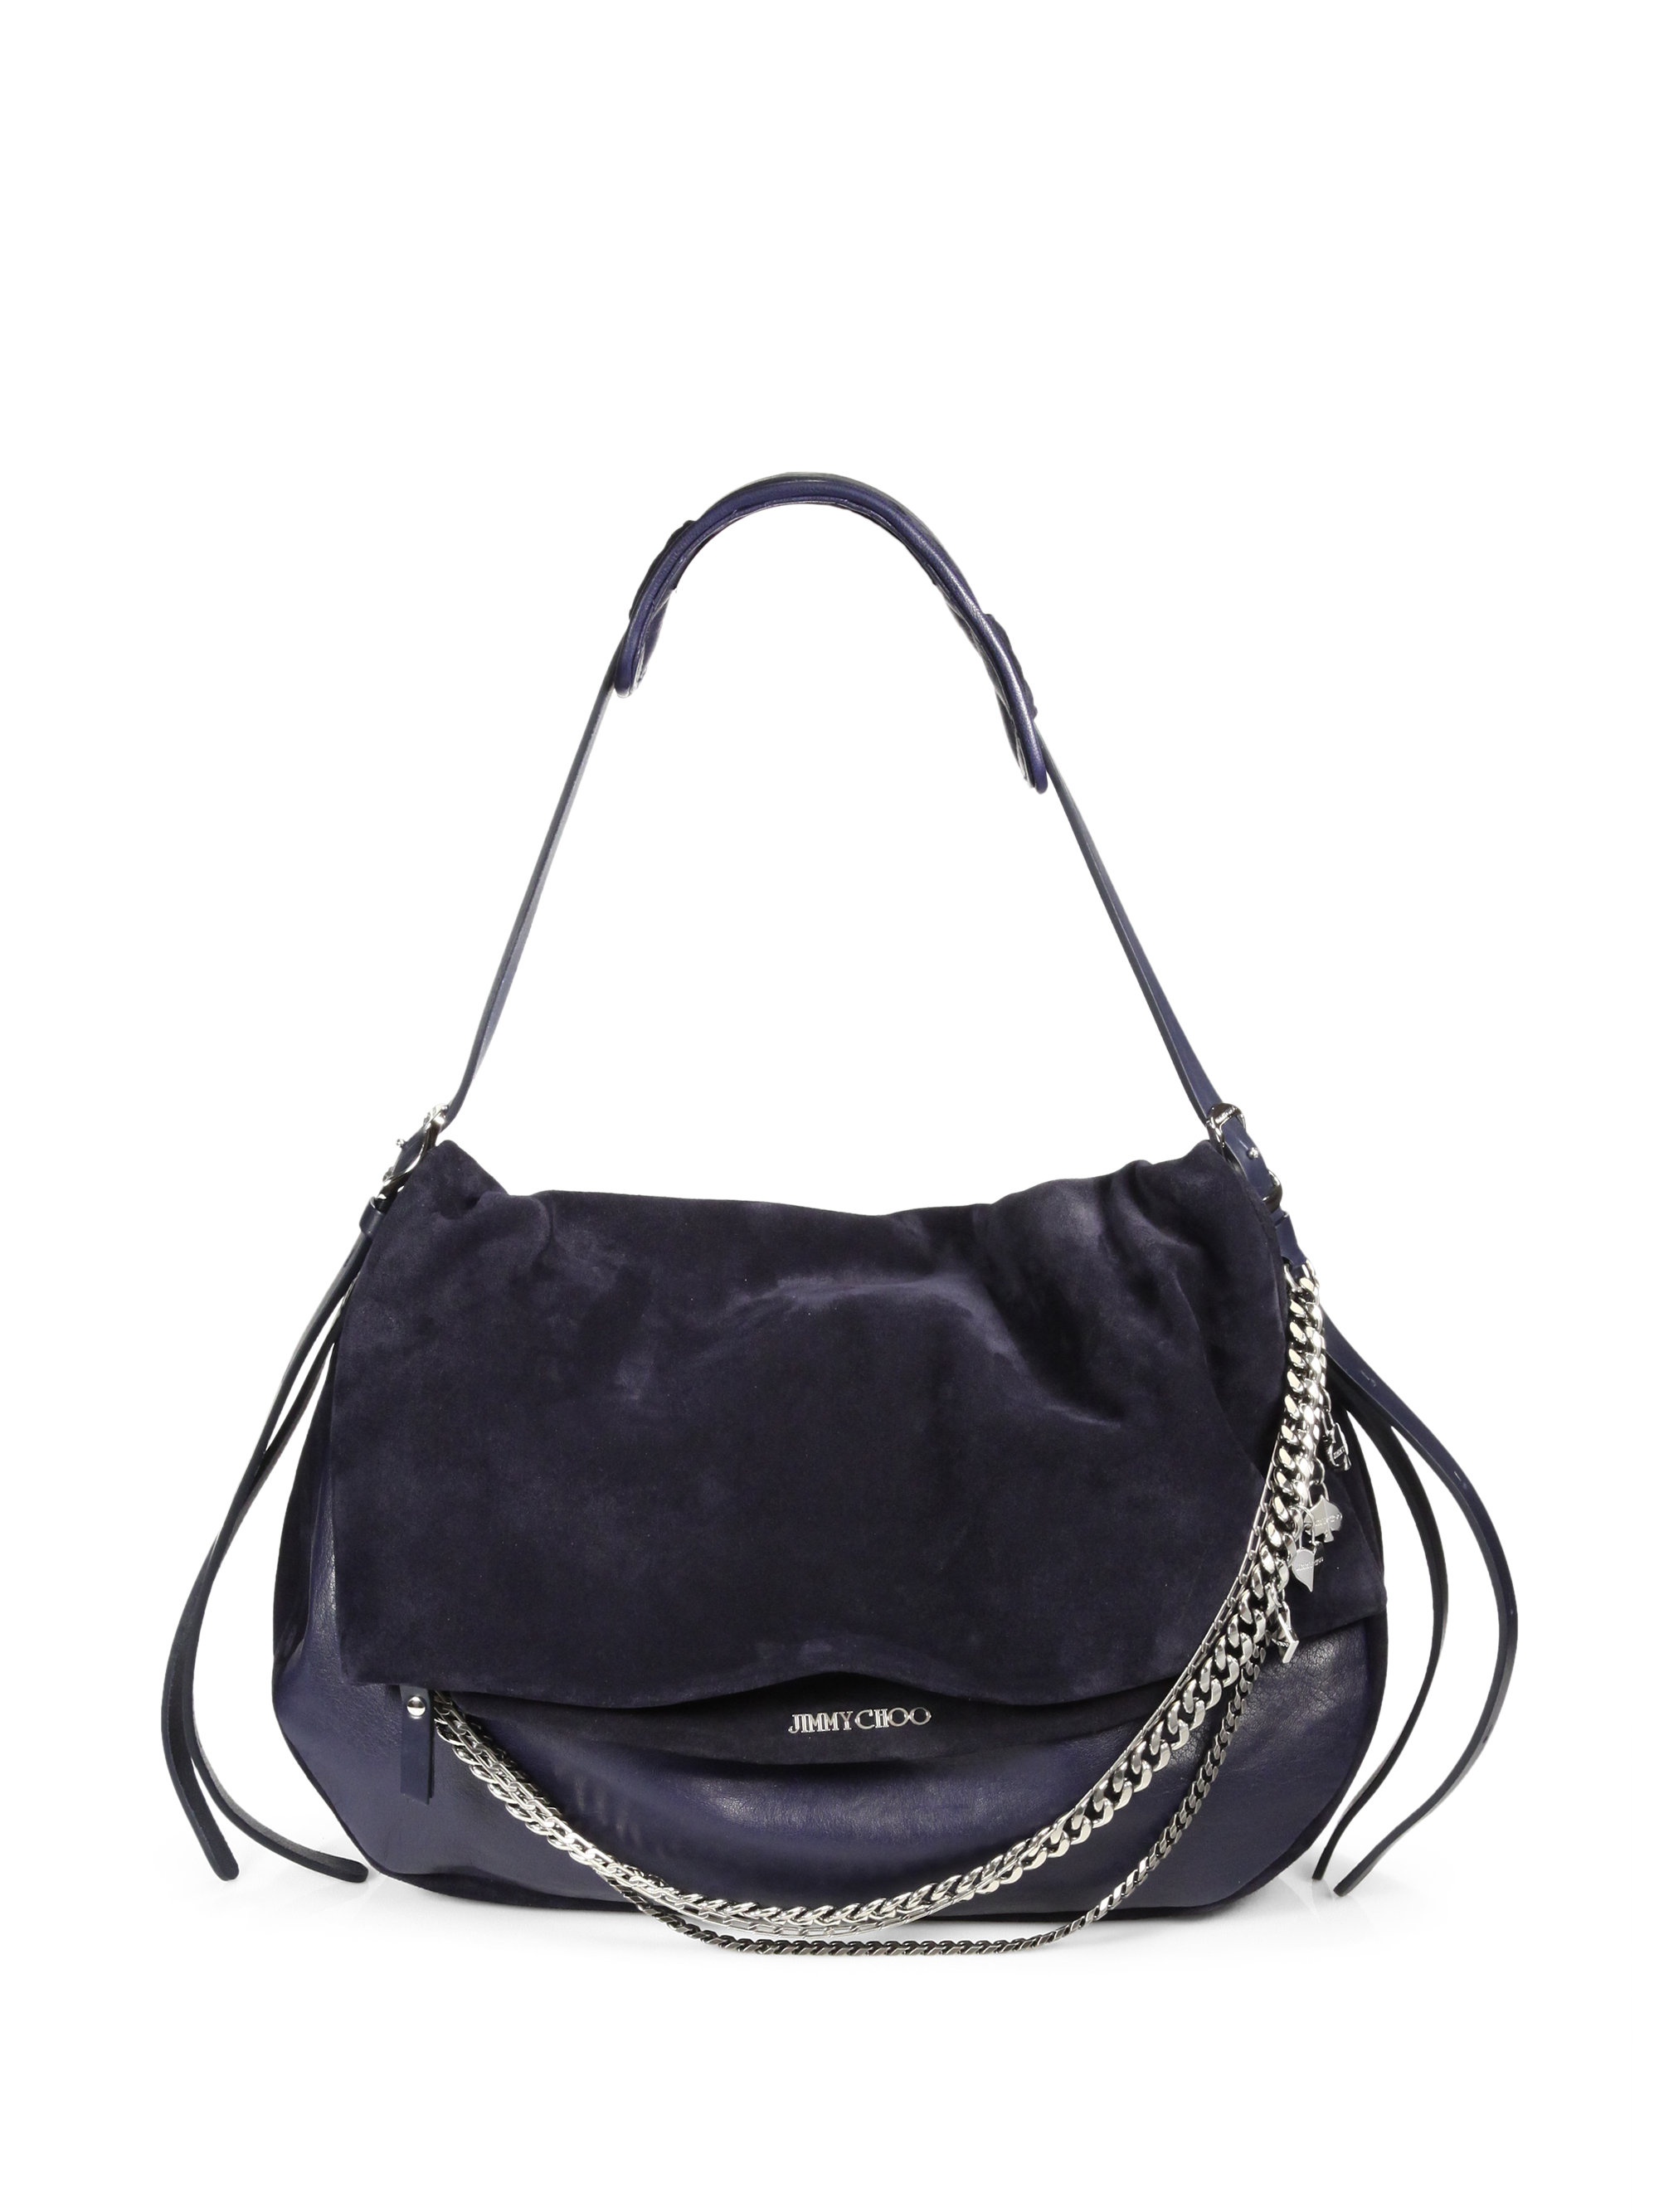 19c141477bde Lyst - Jimmy Choo Suede Leather Large Biker Bag in Black